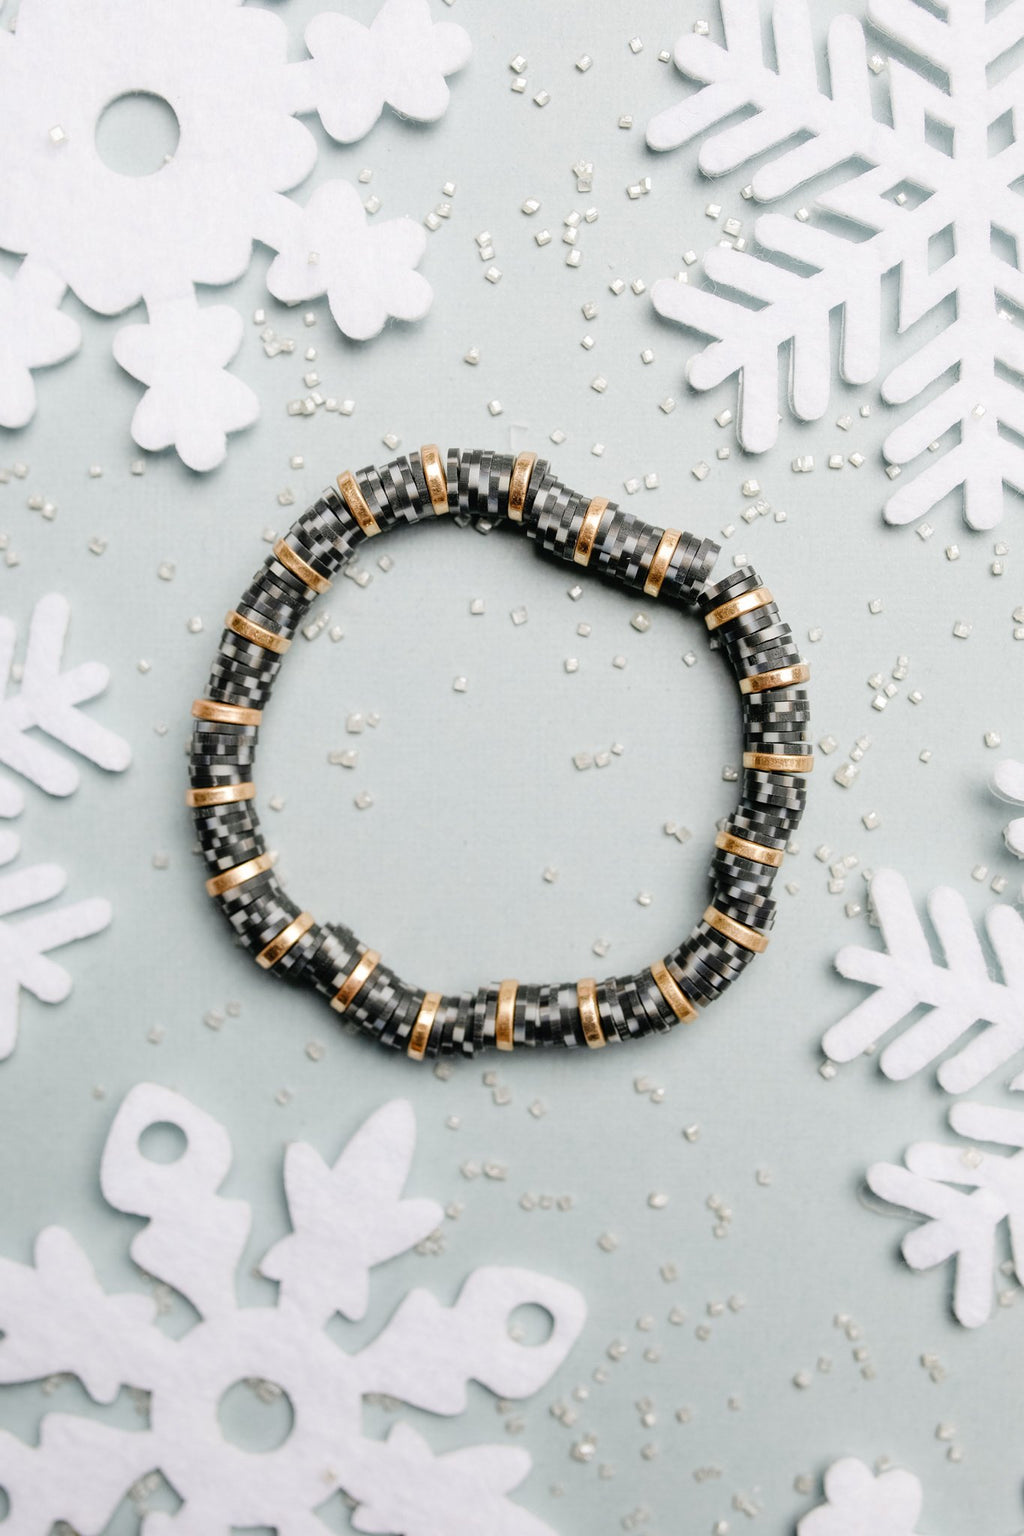 Stocking Stuffer Bracelet in Black